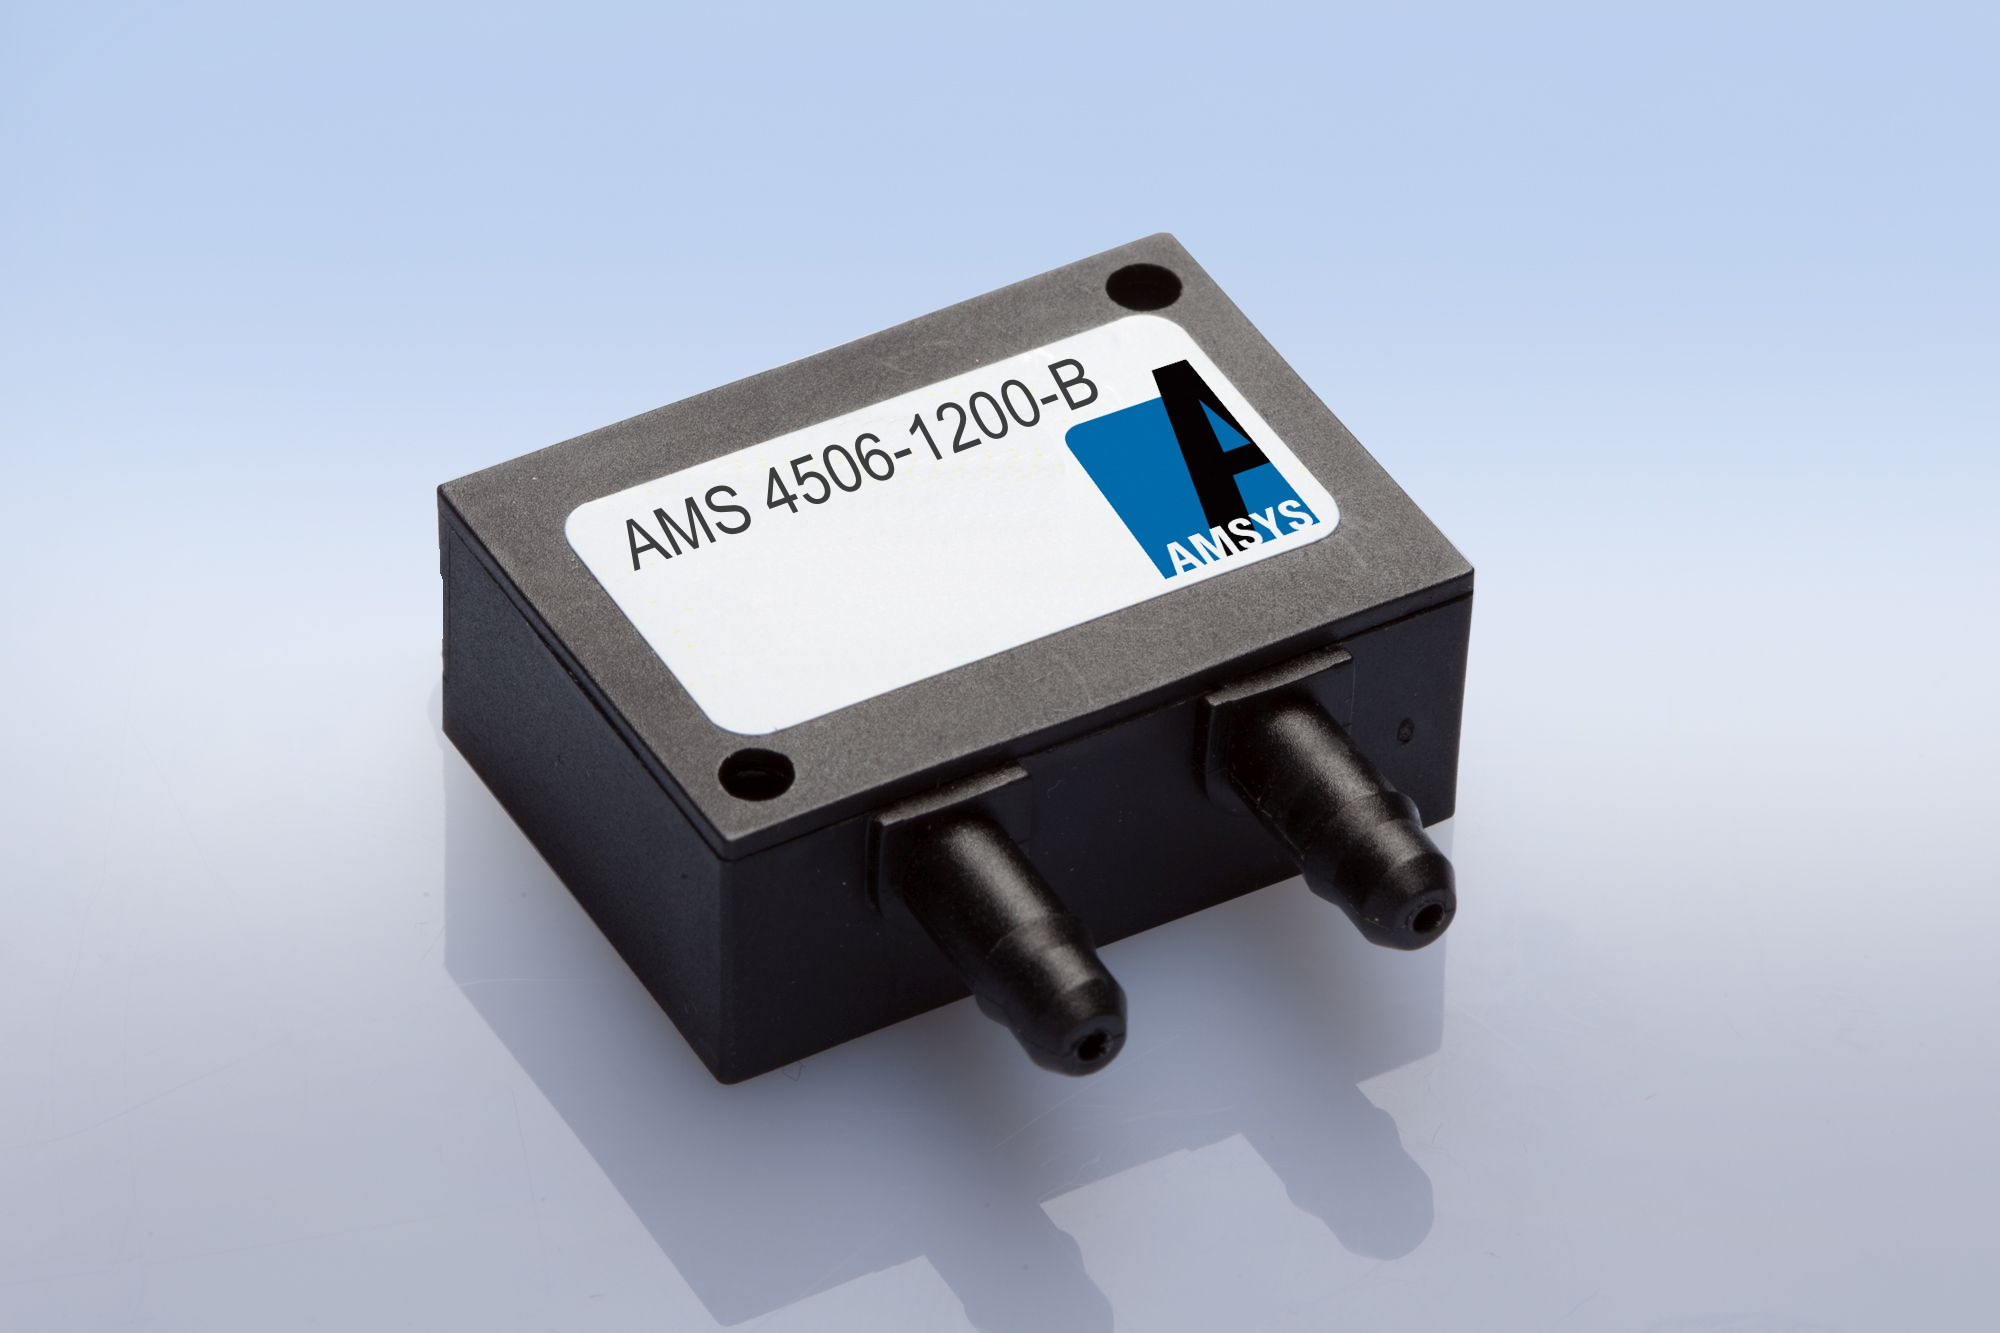 AMS 4506 - Wireless bluetooth 4.2 Drucktransmitter by AMSYS